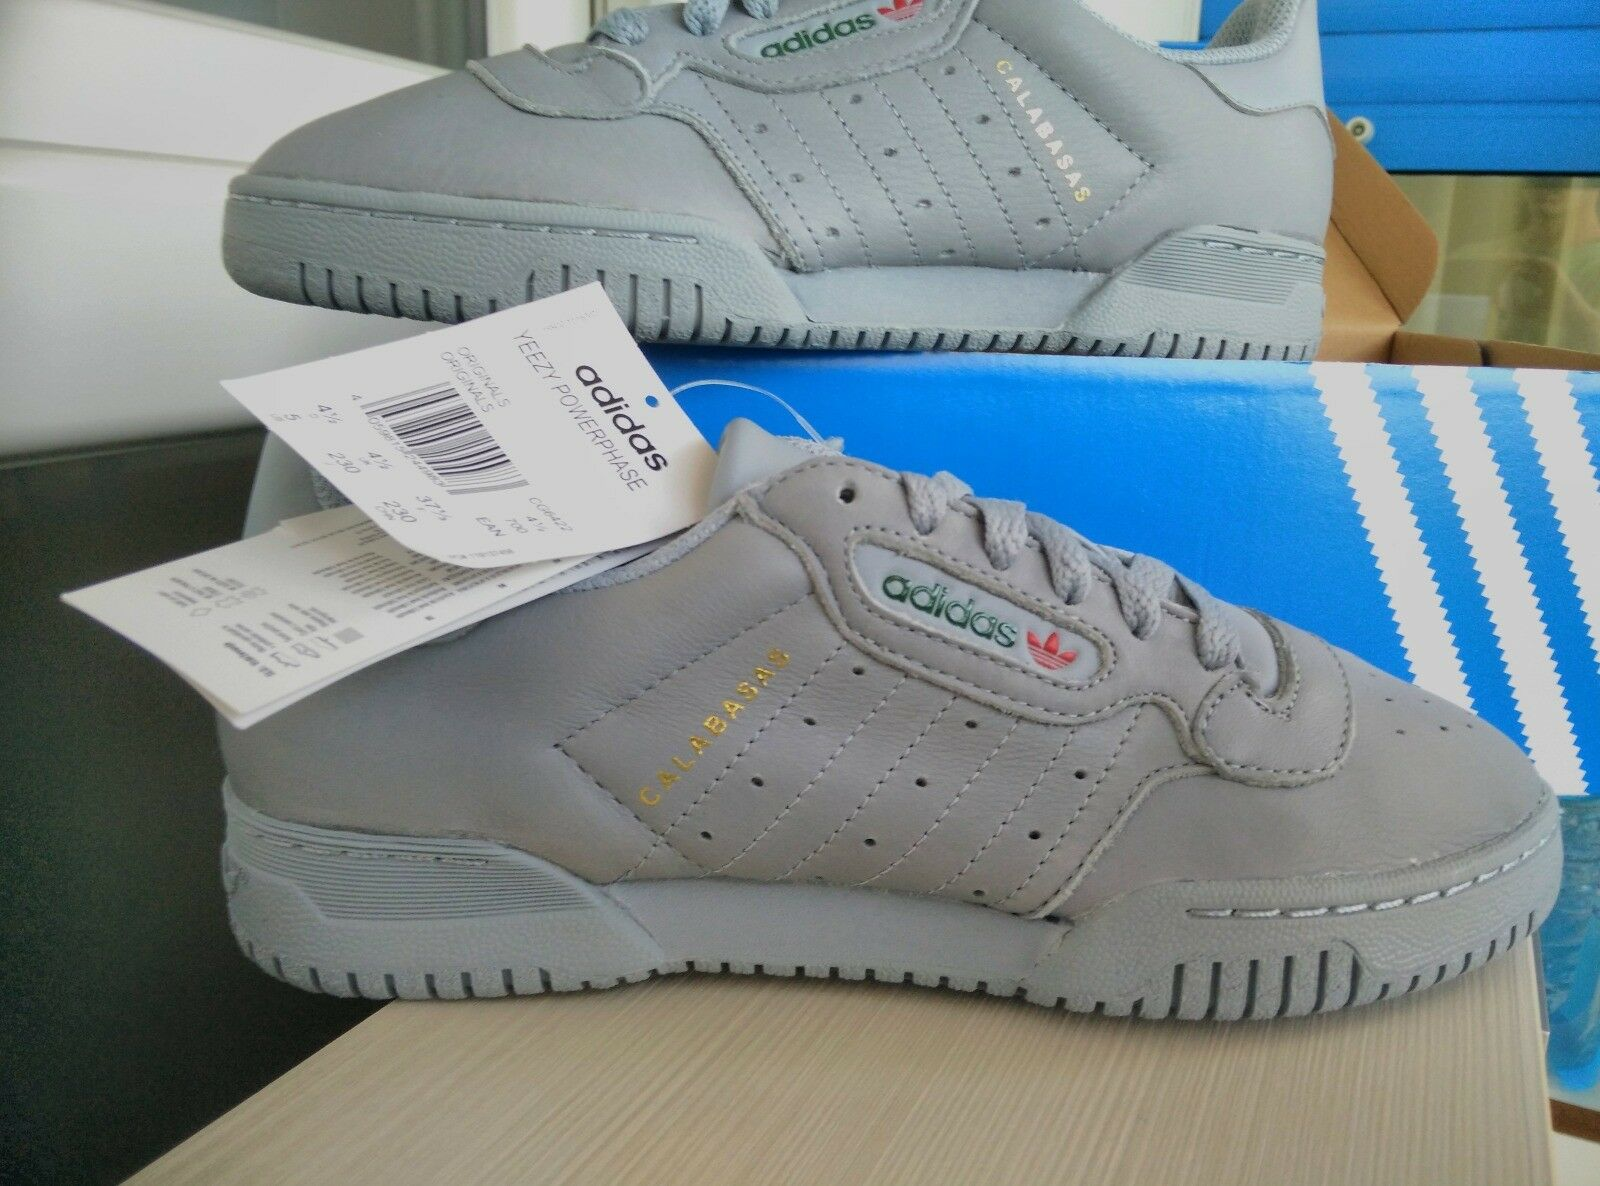 Adidas Yeezy Powerphase Calabas IT 37 1 3 uk 4.5 US 5 NEW    Sold Out